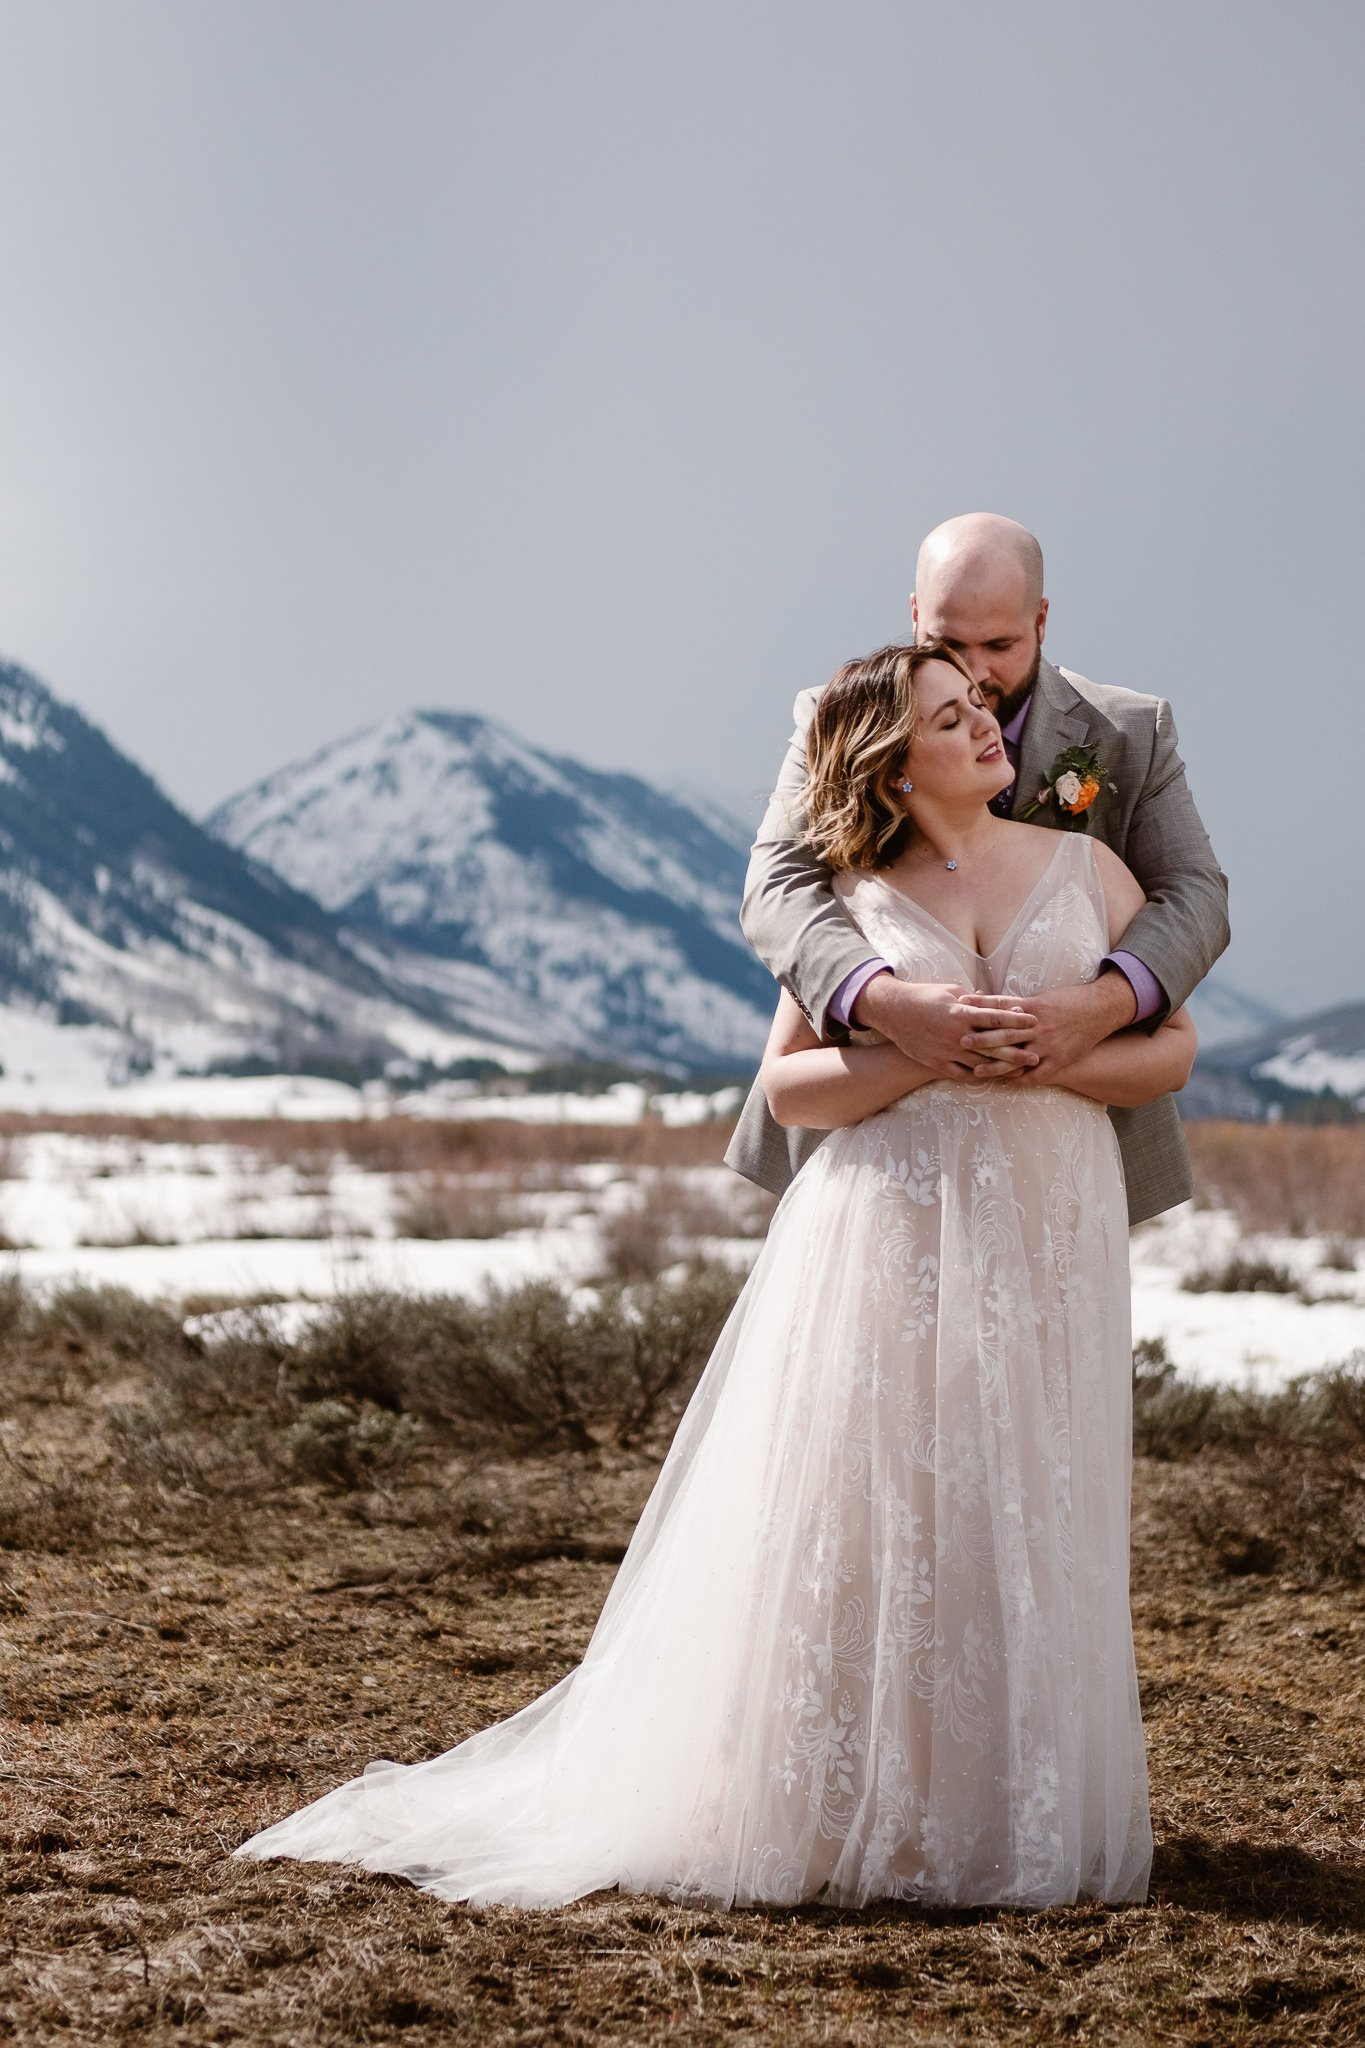 Crested Butte winter wedding, how to handle bad weather on your wedding day